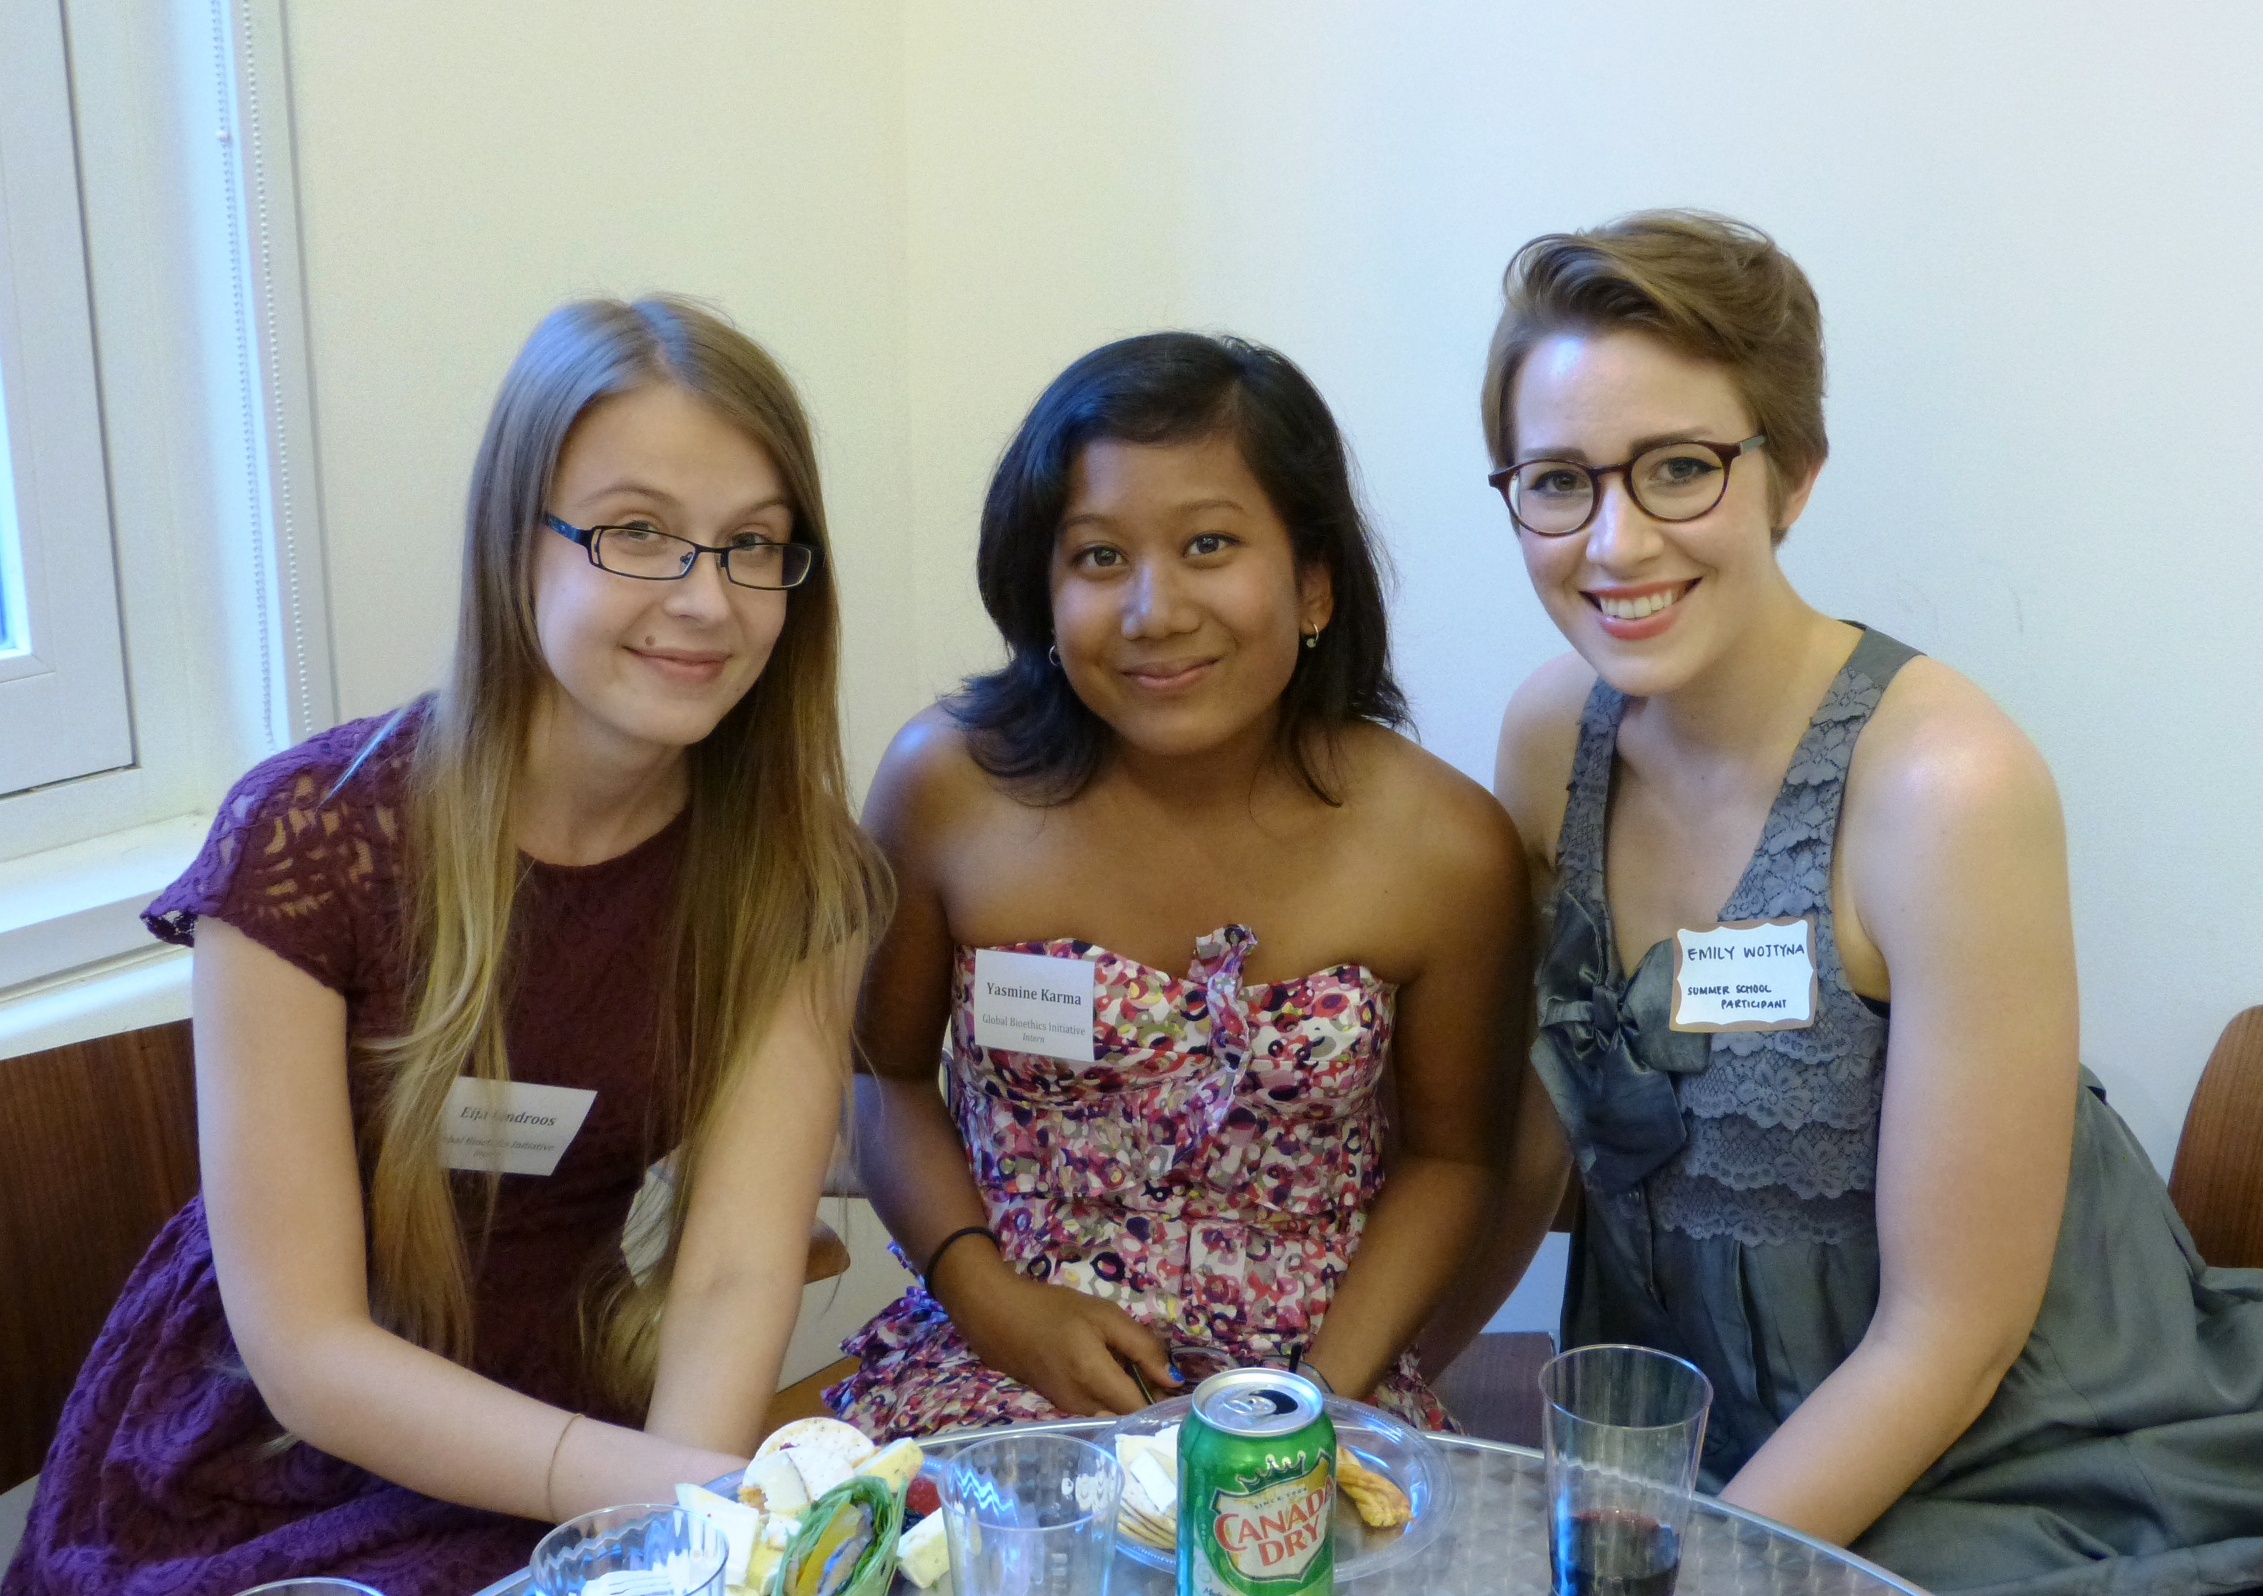 From Left to Right: GBI Summer Intern Eija Lindroos, GBI Summer Intern and Summer School student Yasmine Karma, and GBI Summer School student Emily Wojtyna